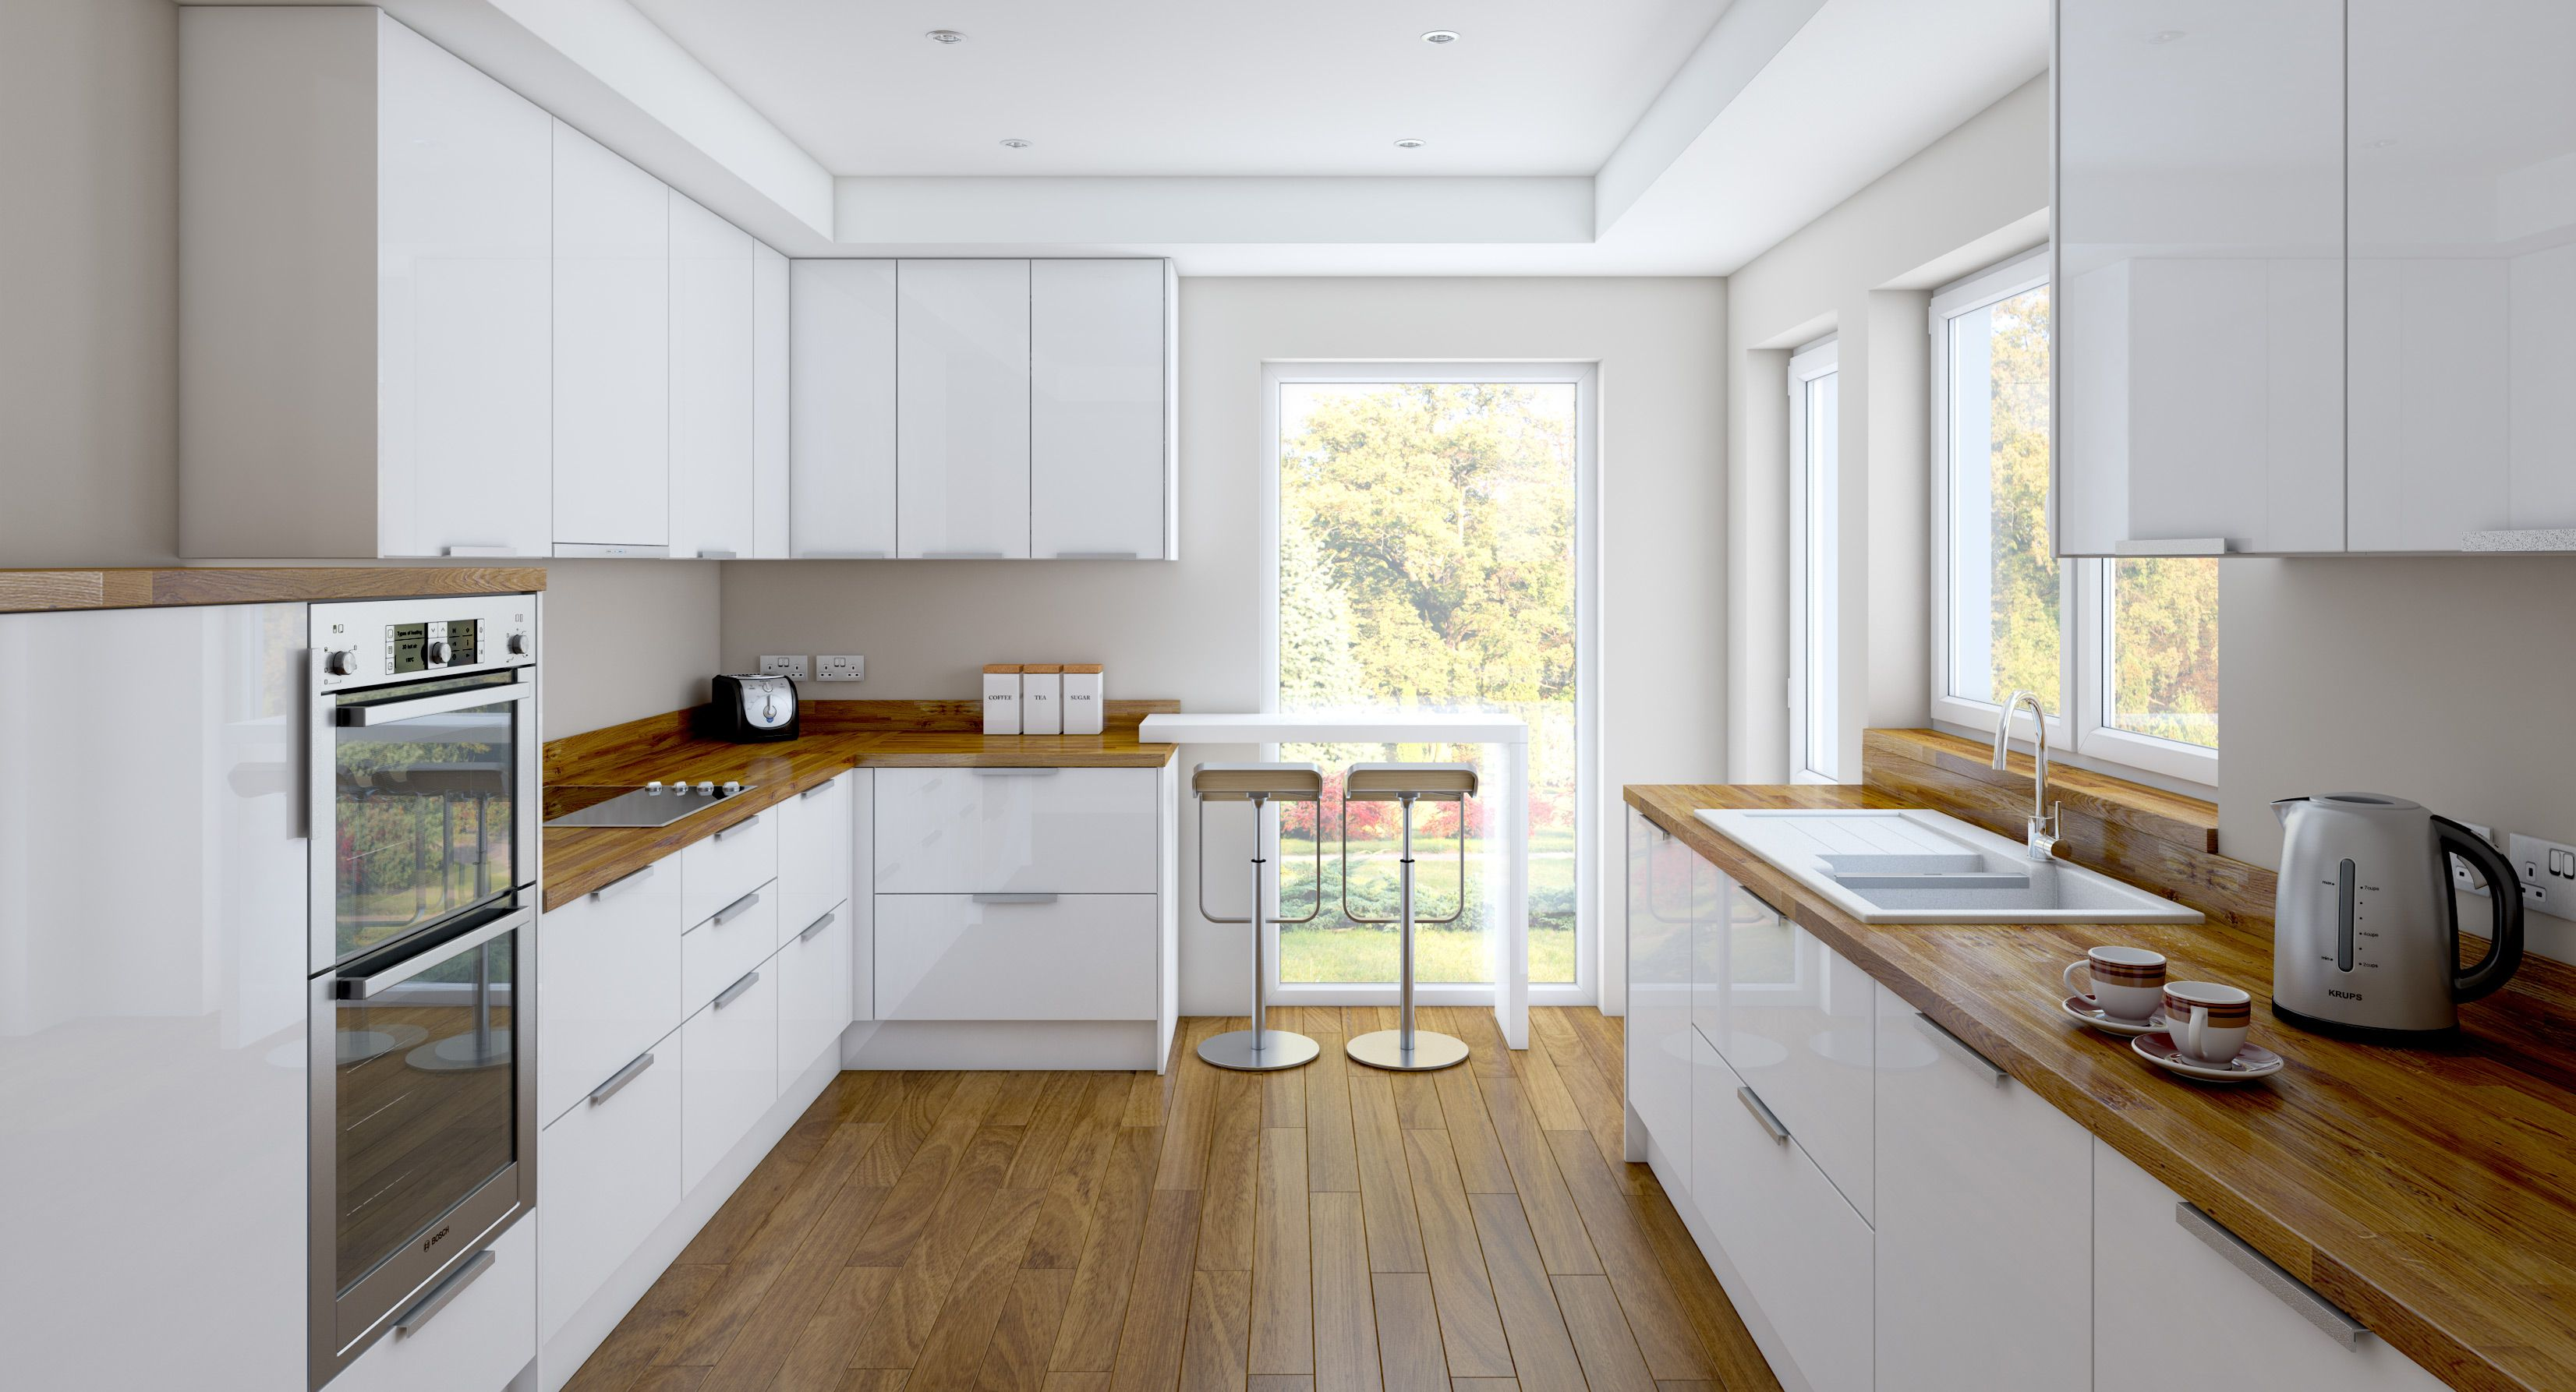 Oak Worktops And Floors Warm Up A White Gloss Kitchen But Not Enough More